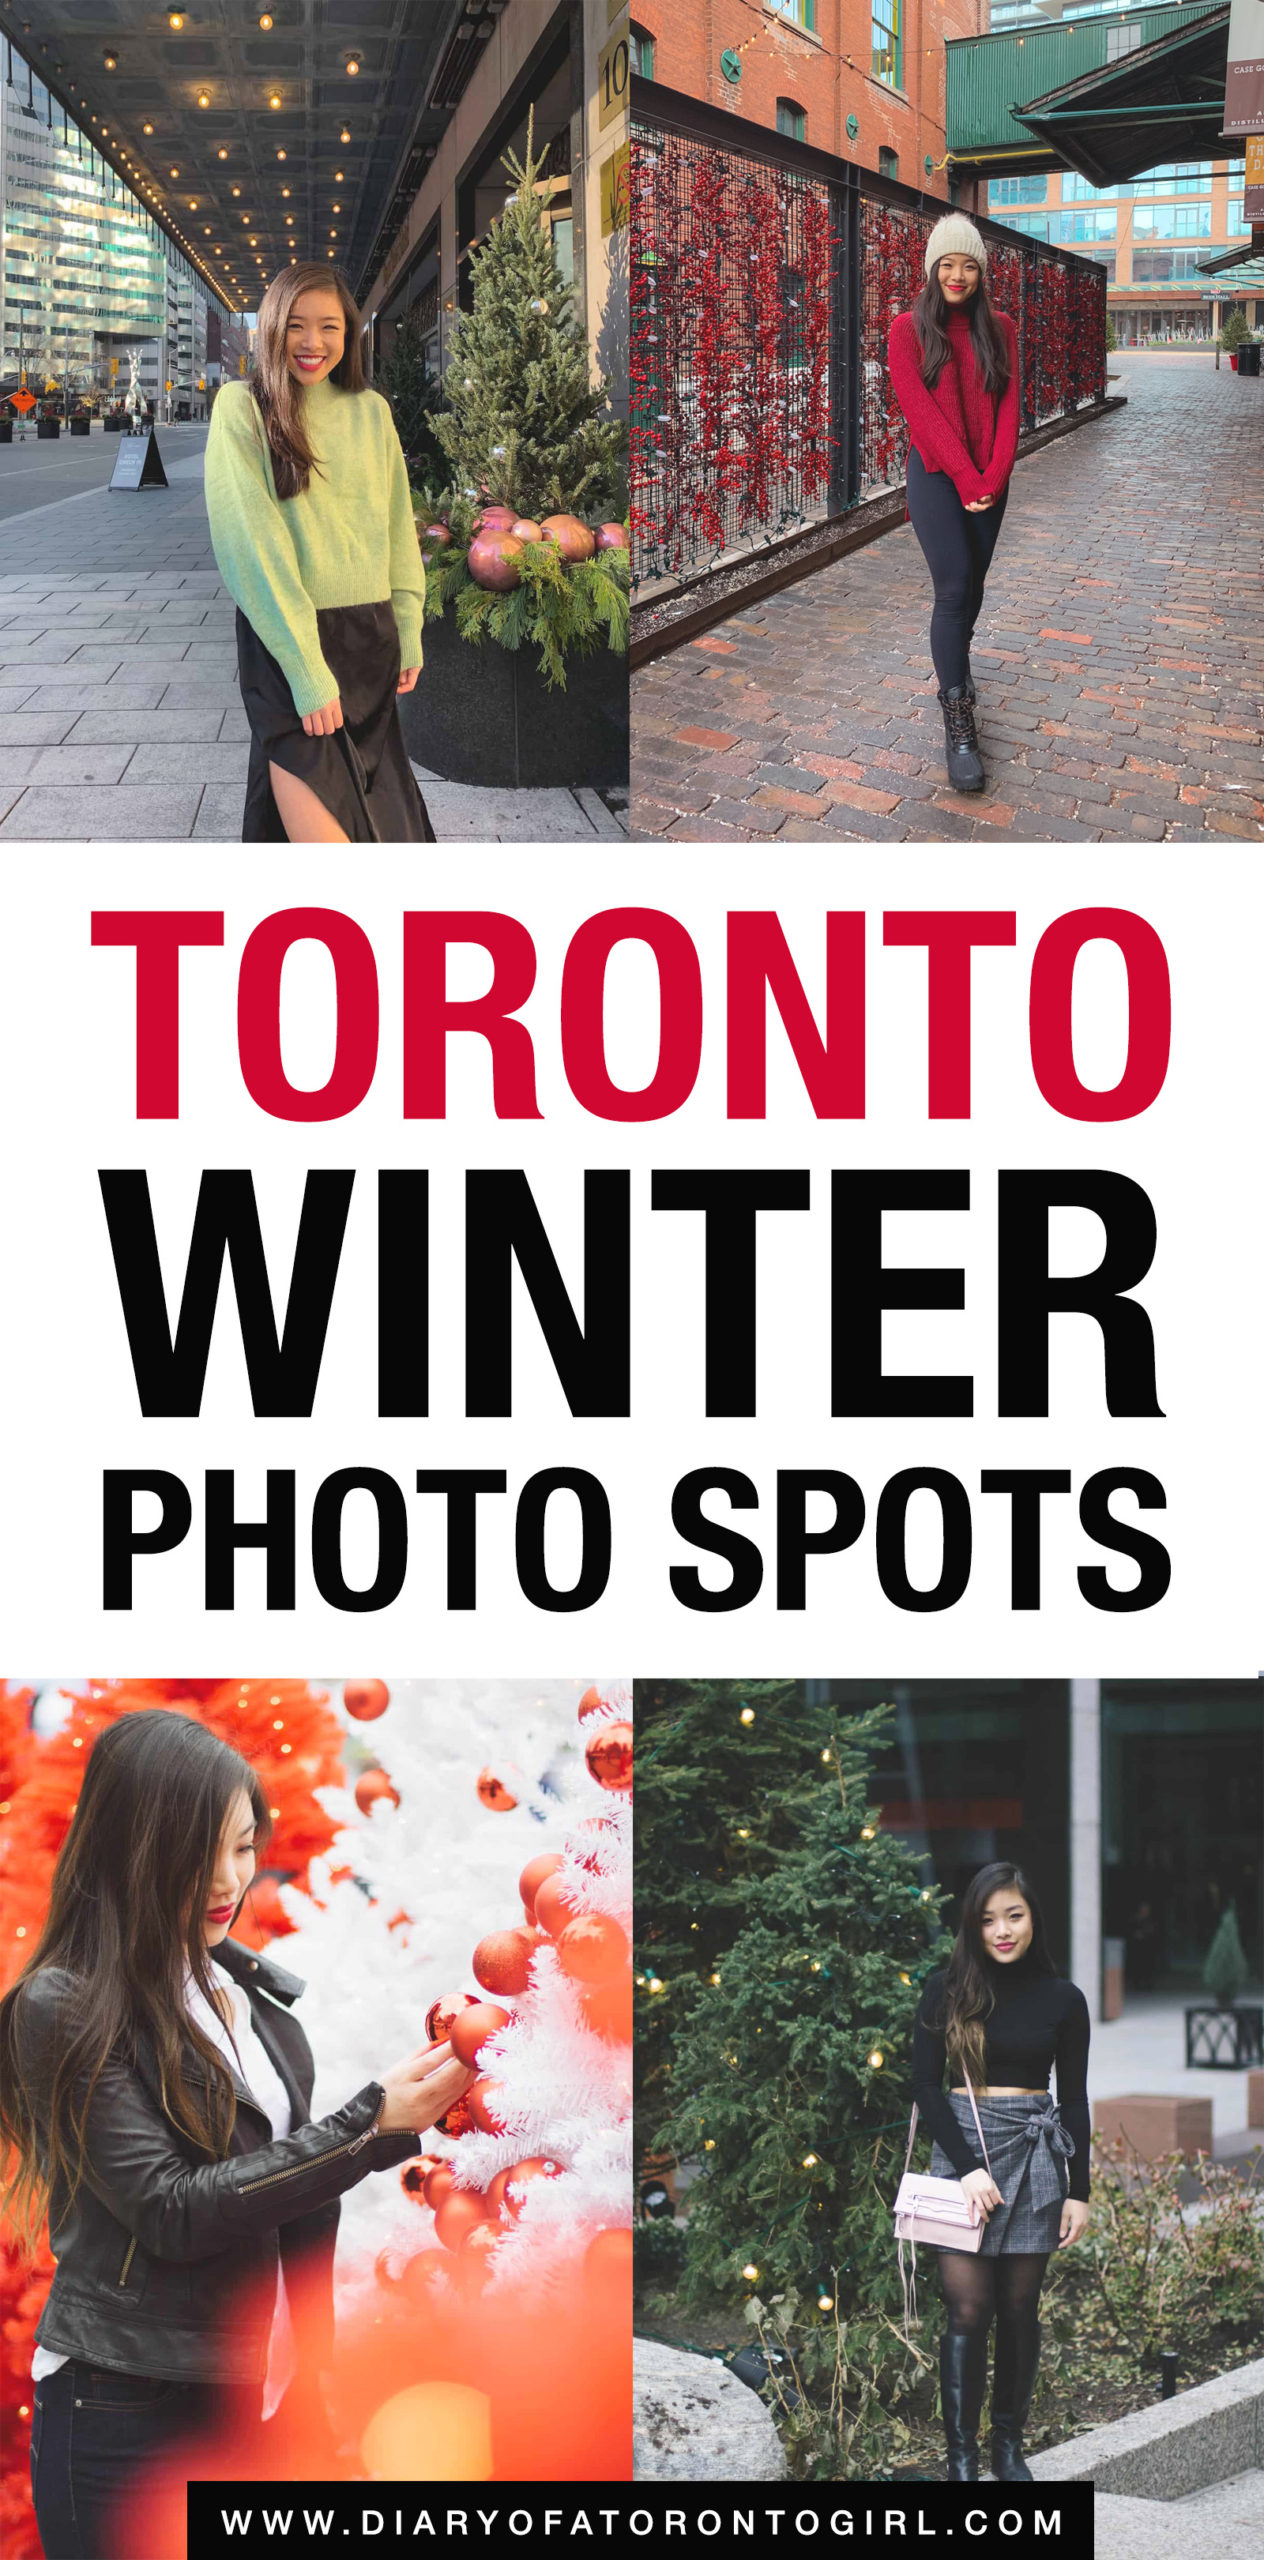 Looking for cool winter photo spots to check out in Toronto? Here are some of the cutest and most Instagram-worthy places to take photos during the winter in Toronto!